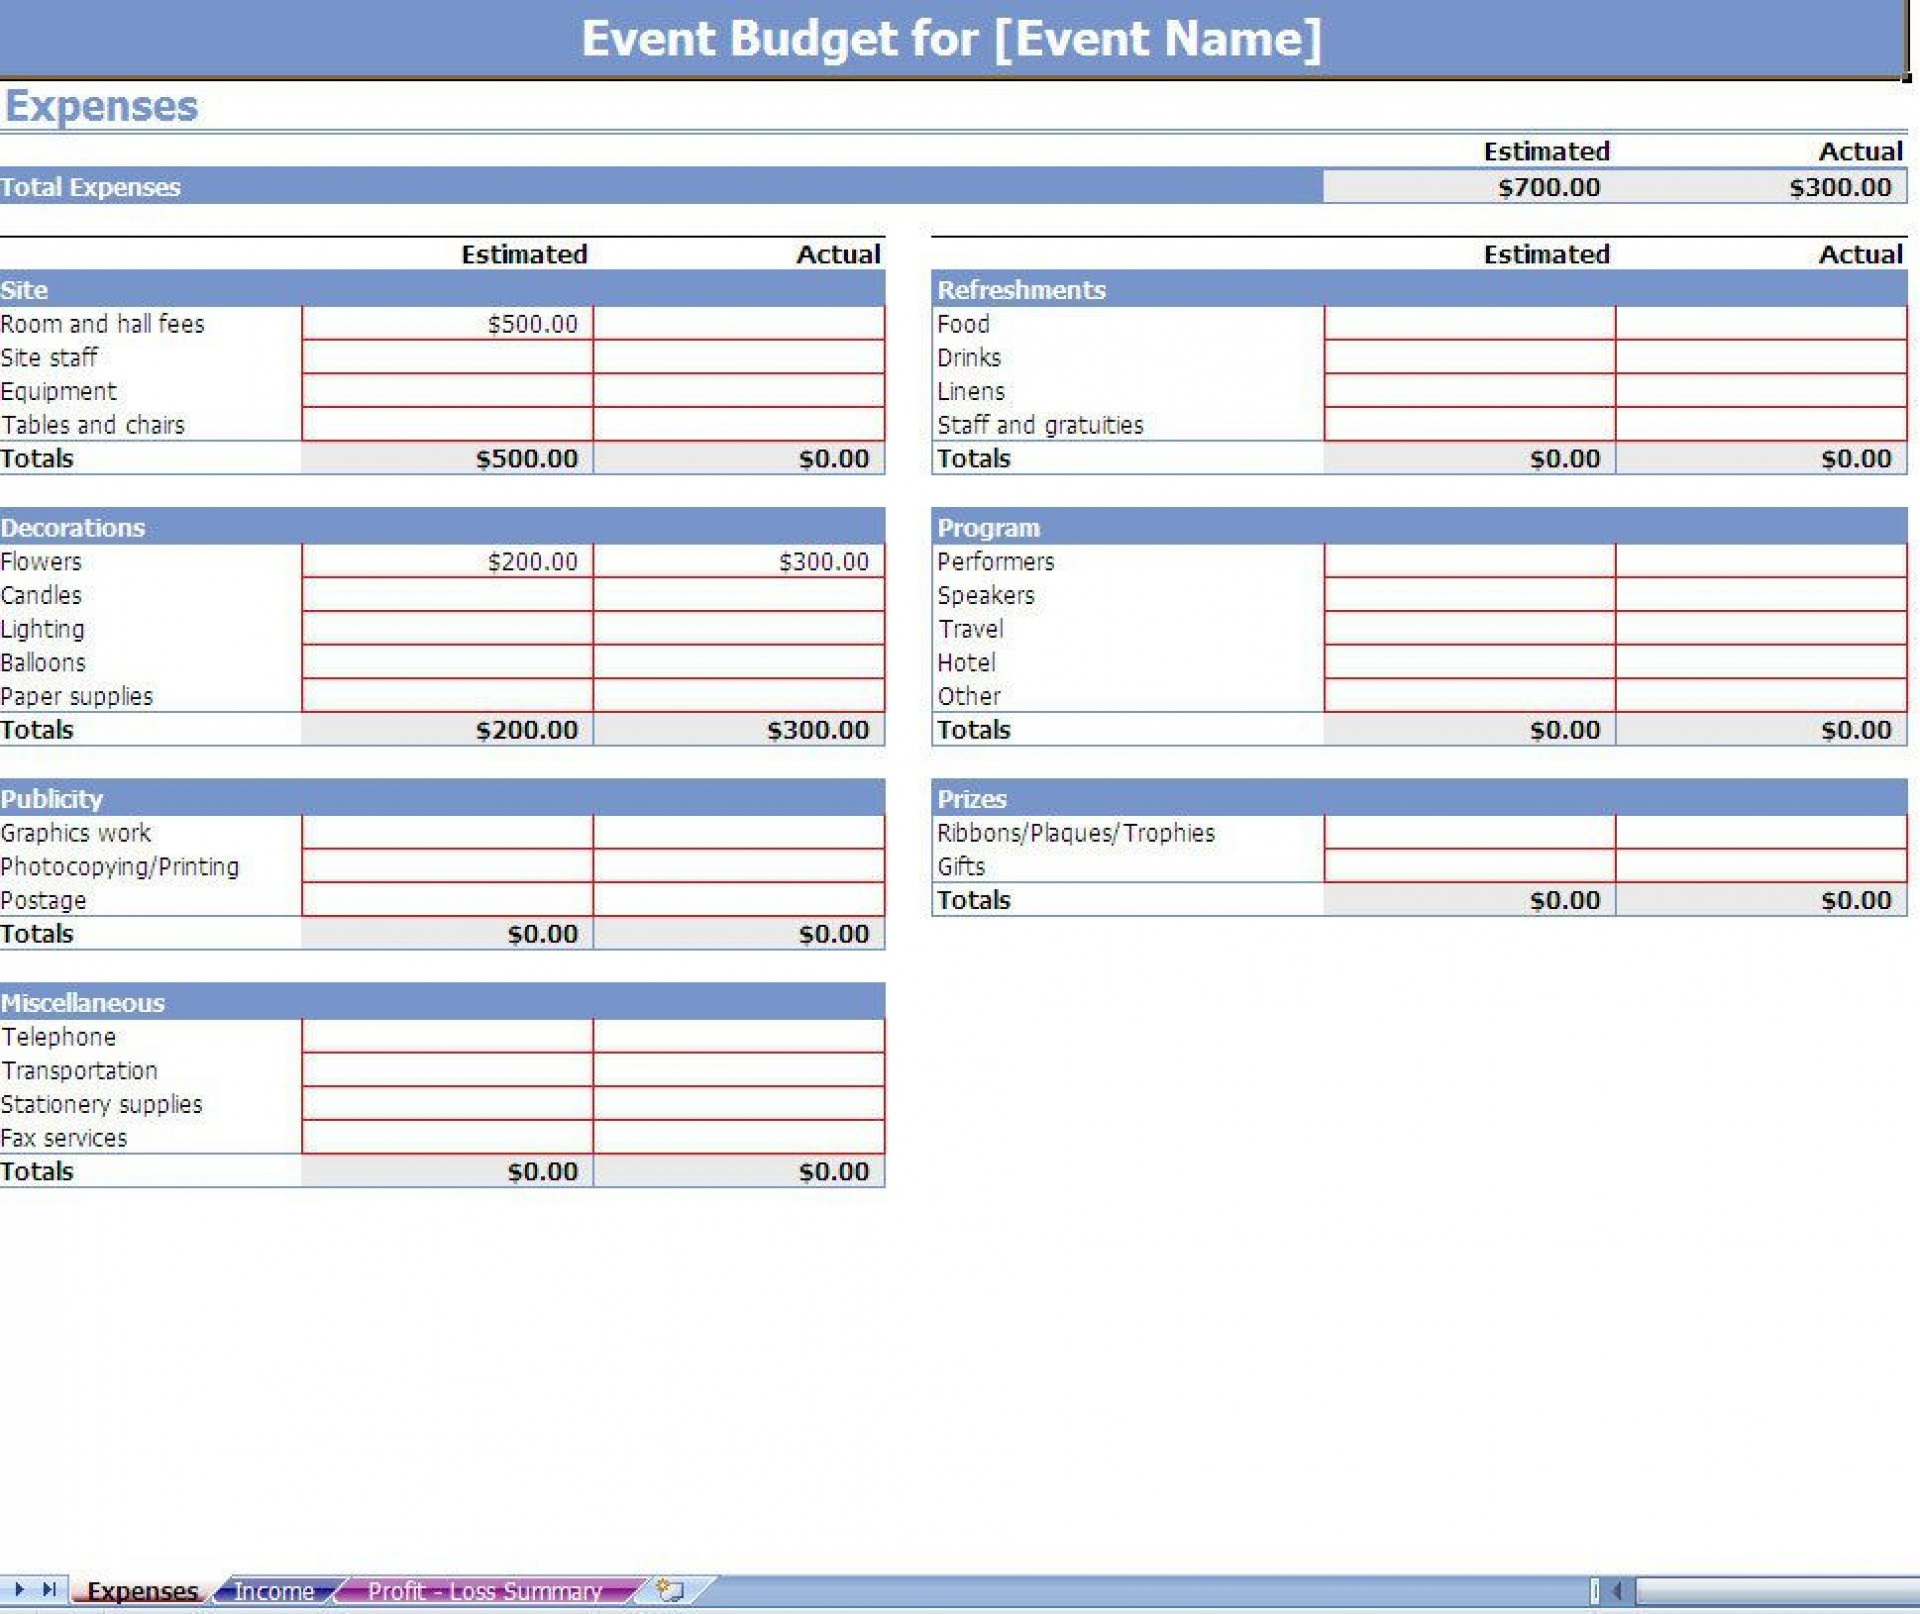 003 Impressive Event Budget Template Excel Idea  Download 2010 Planner1920